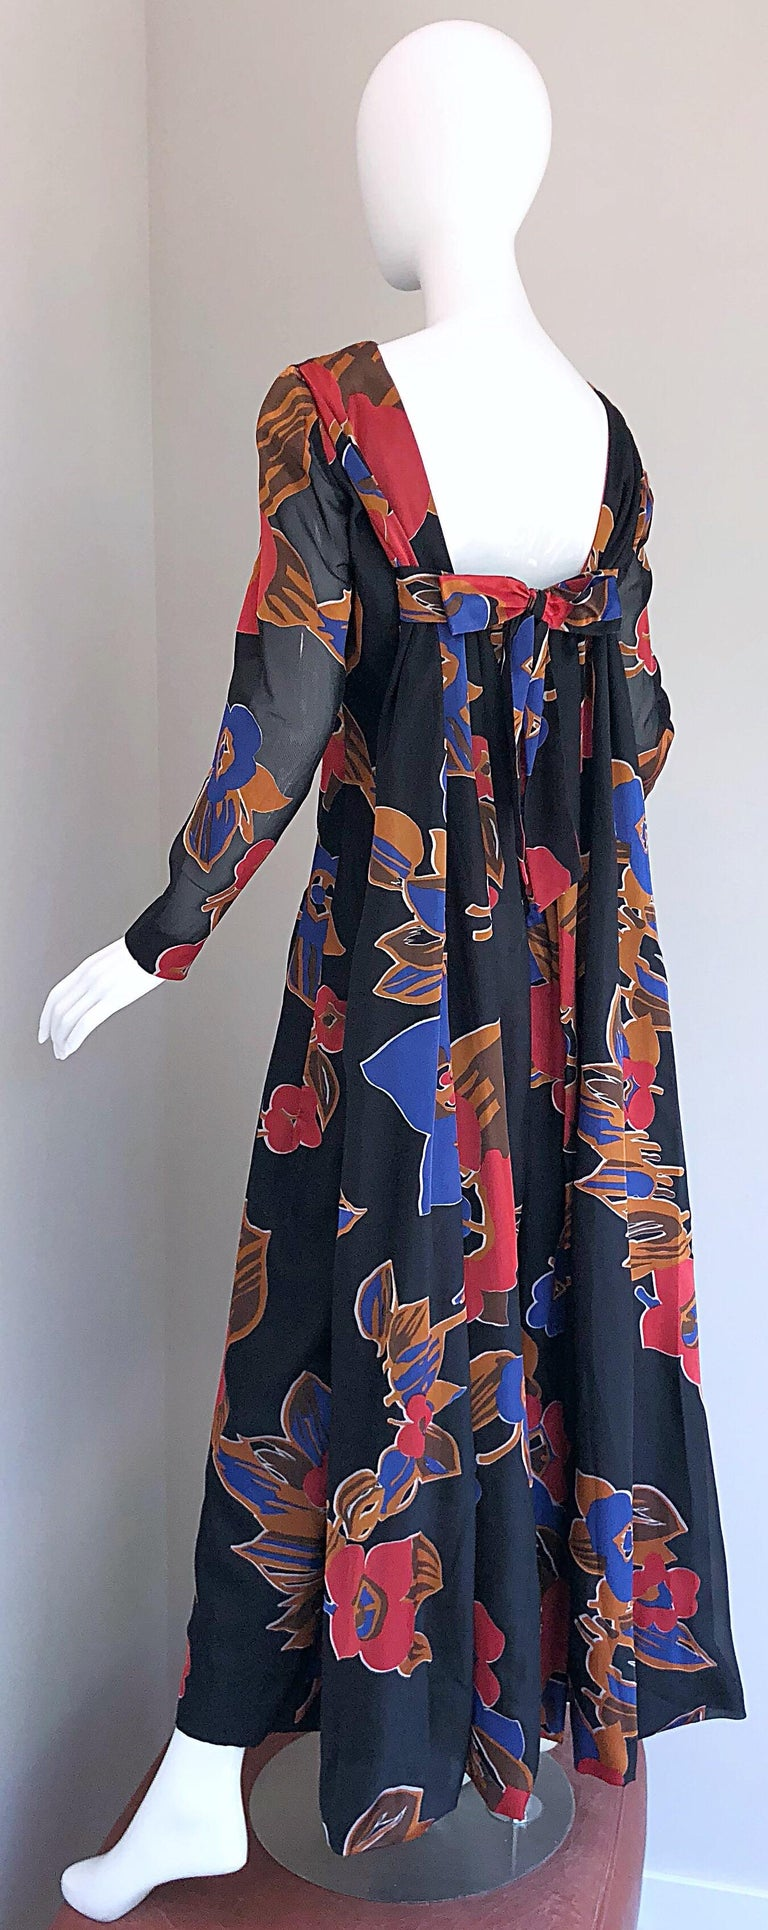 1960s John Boyle Bishop Black + Brown + Red Abstract Trained 60s Gown Maxi Dress For Sale 6